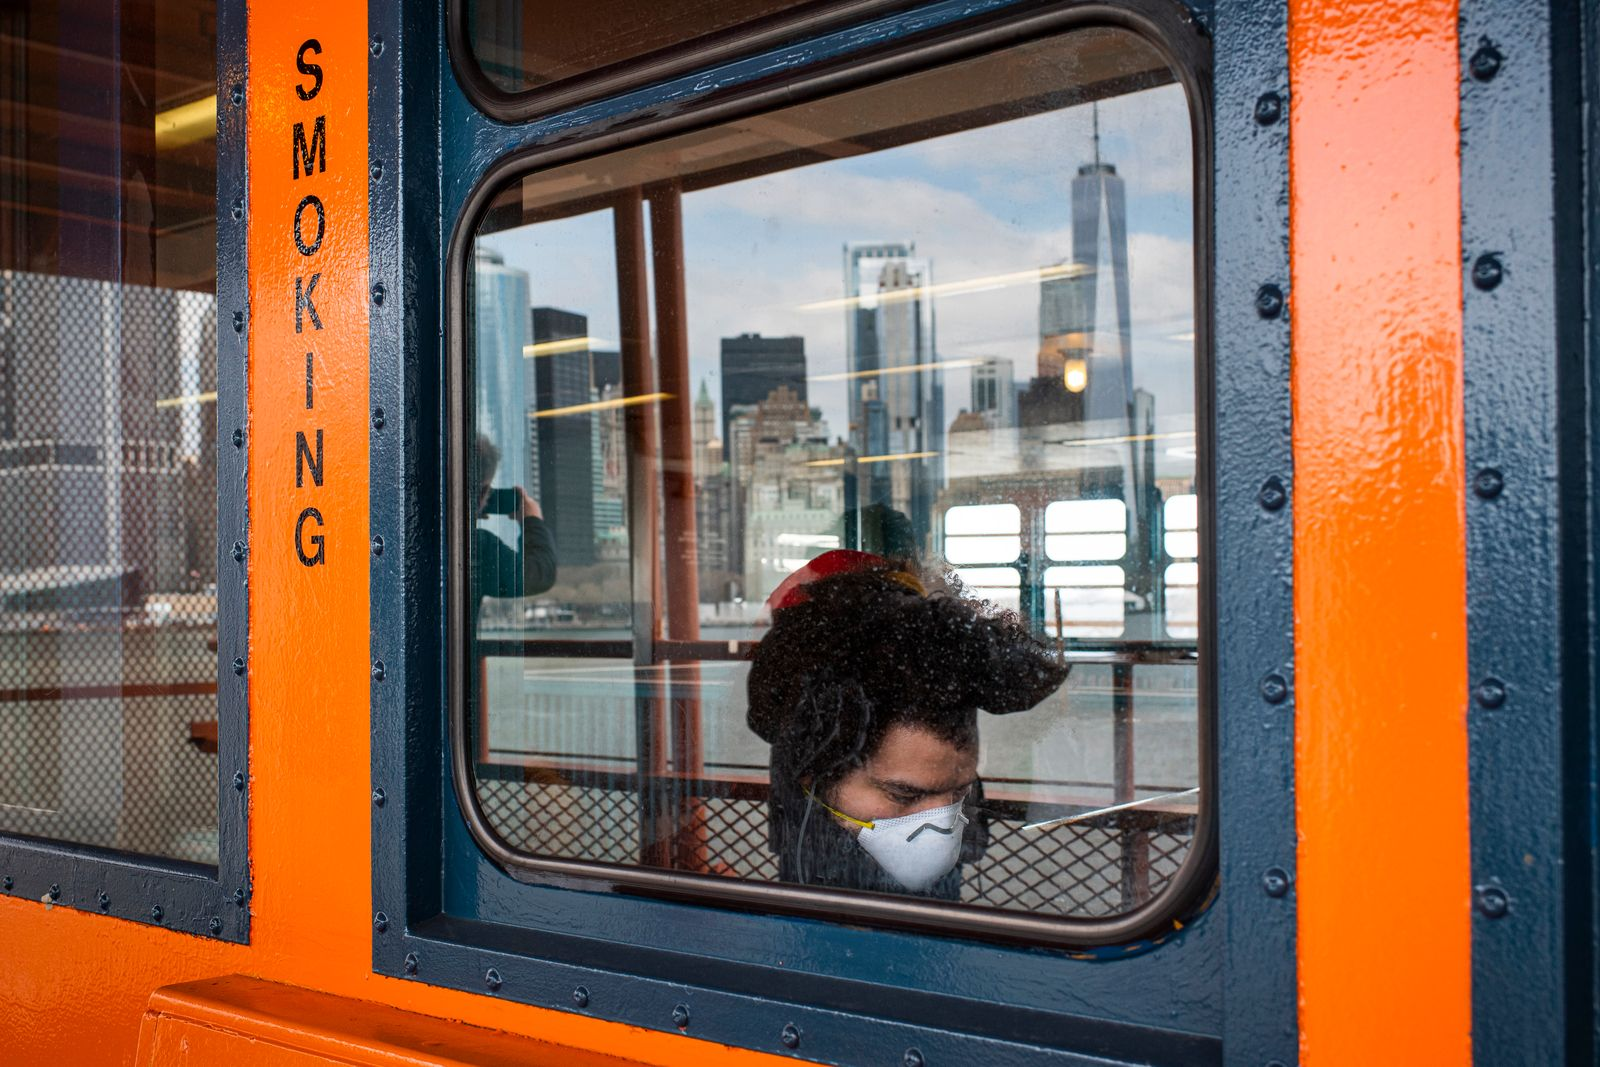 A passenger wears a face mask on the the Staten Island Ferry in New York, March 16, 2020. (Joshua Bright/The New York Times)